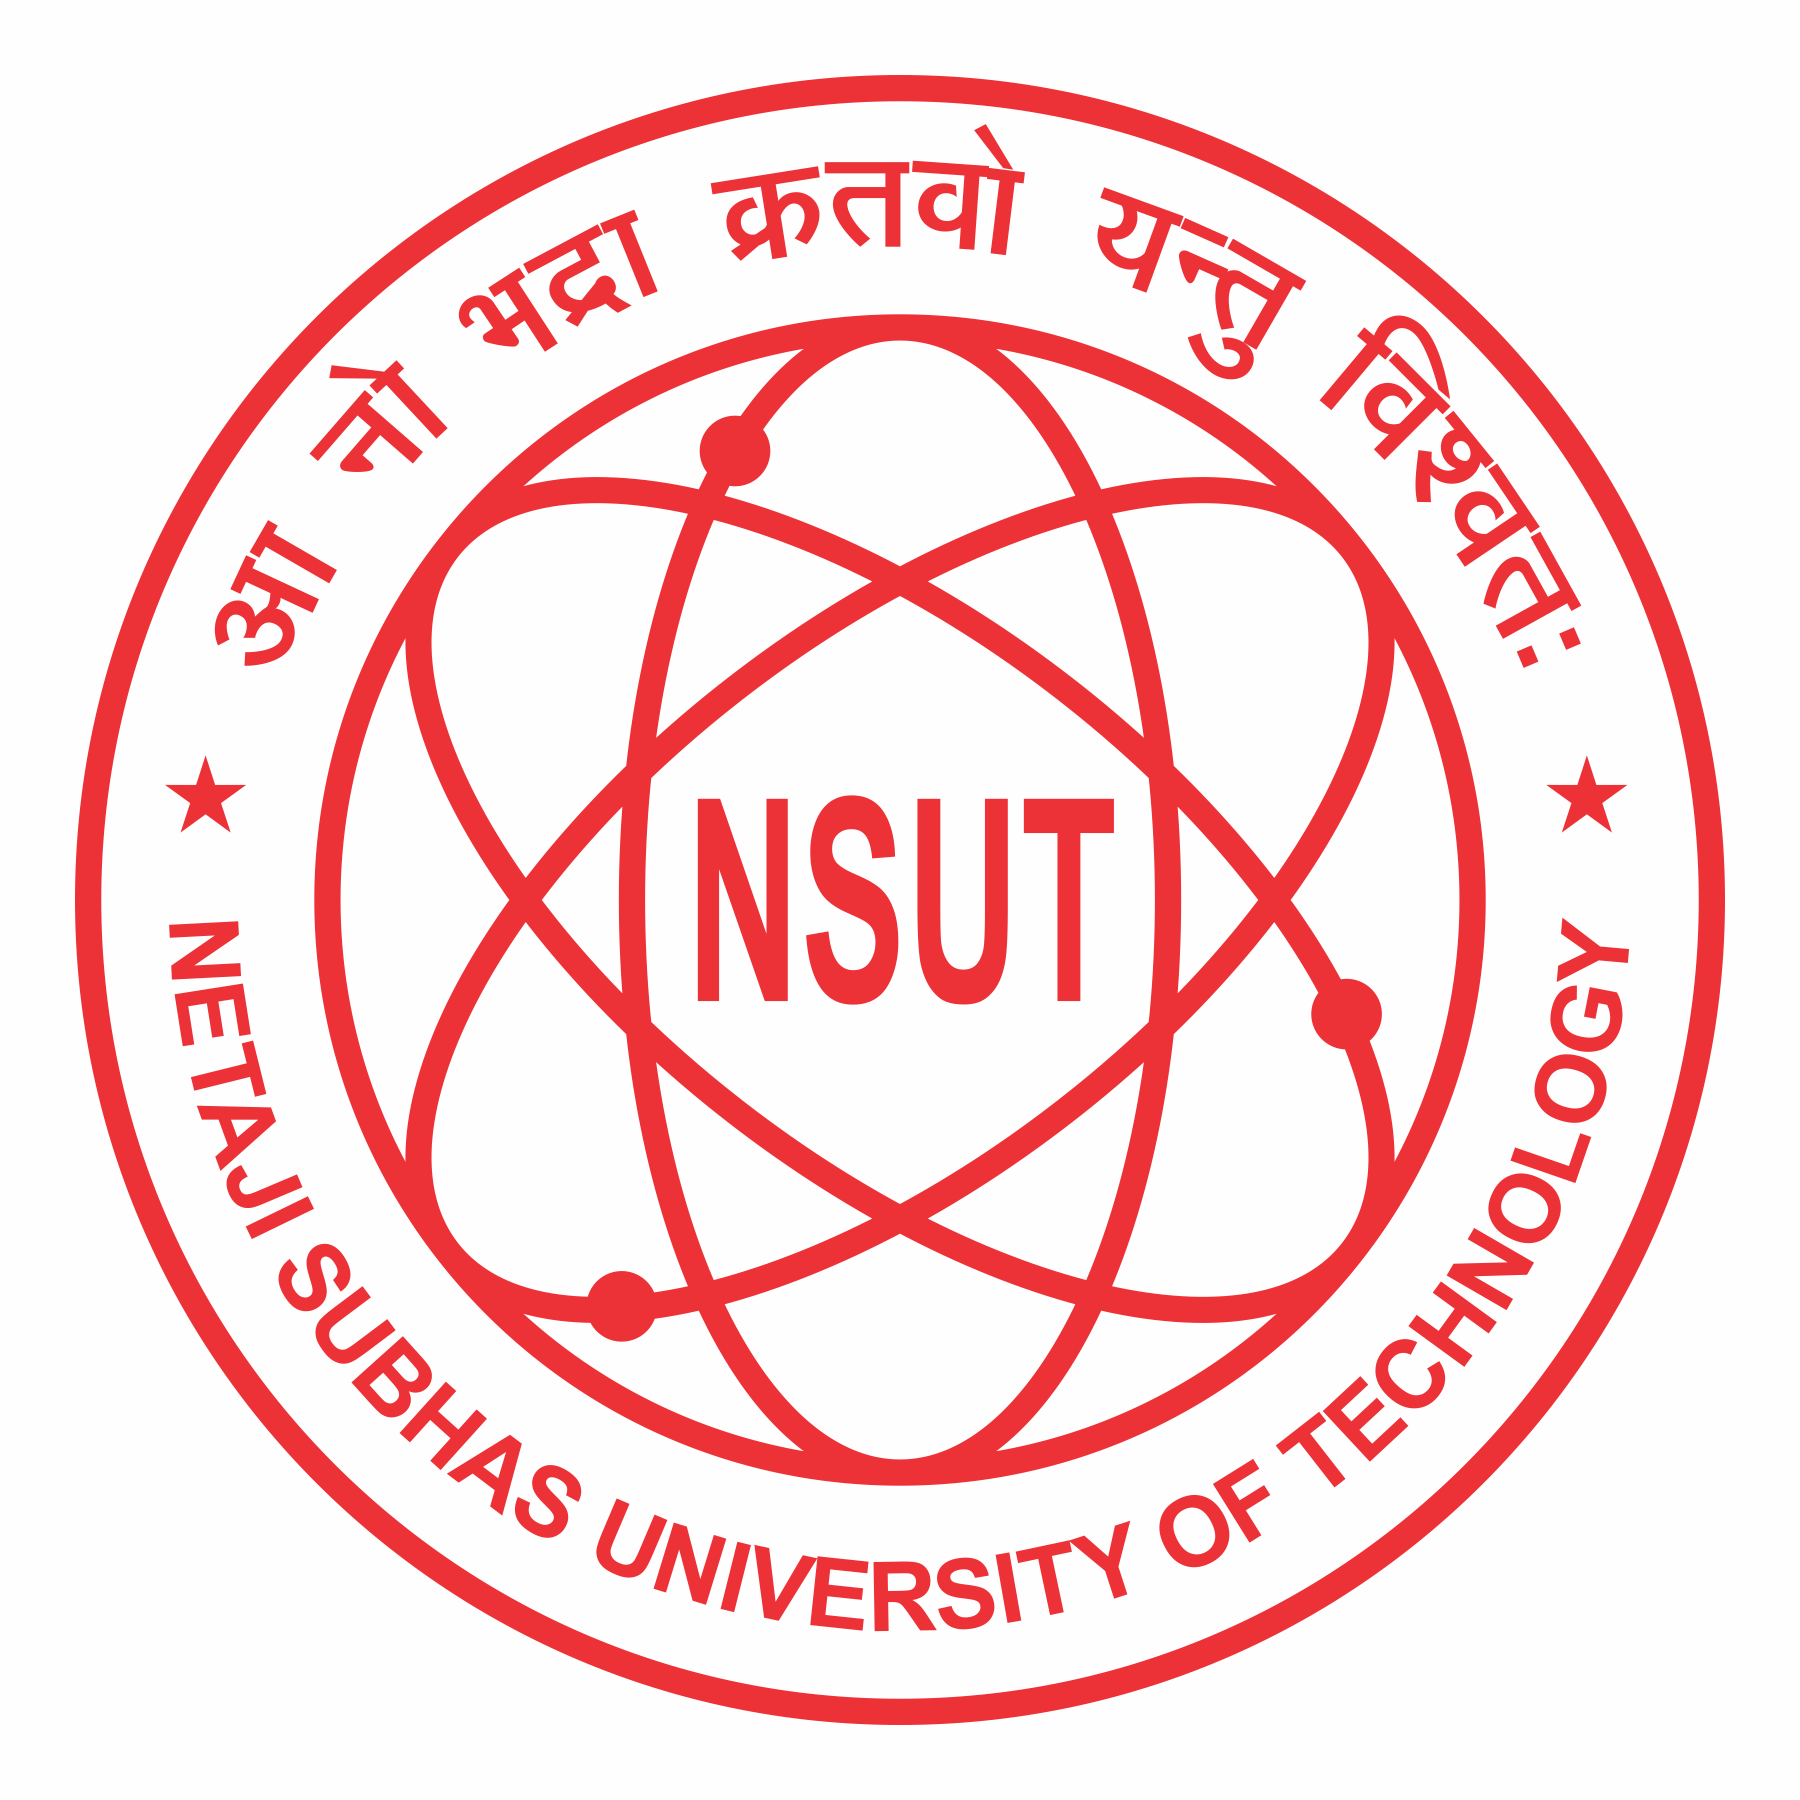 Netaji Subhas University of Technology